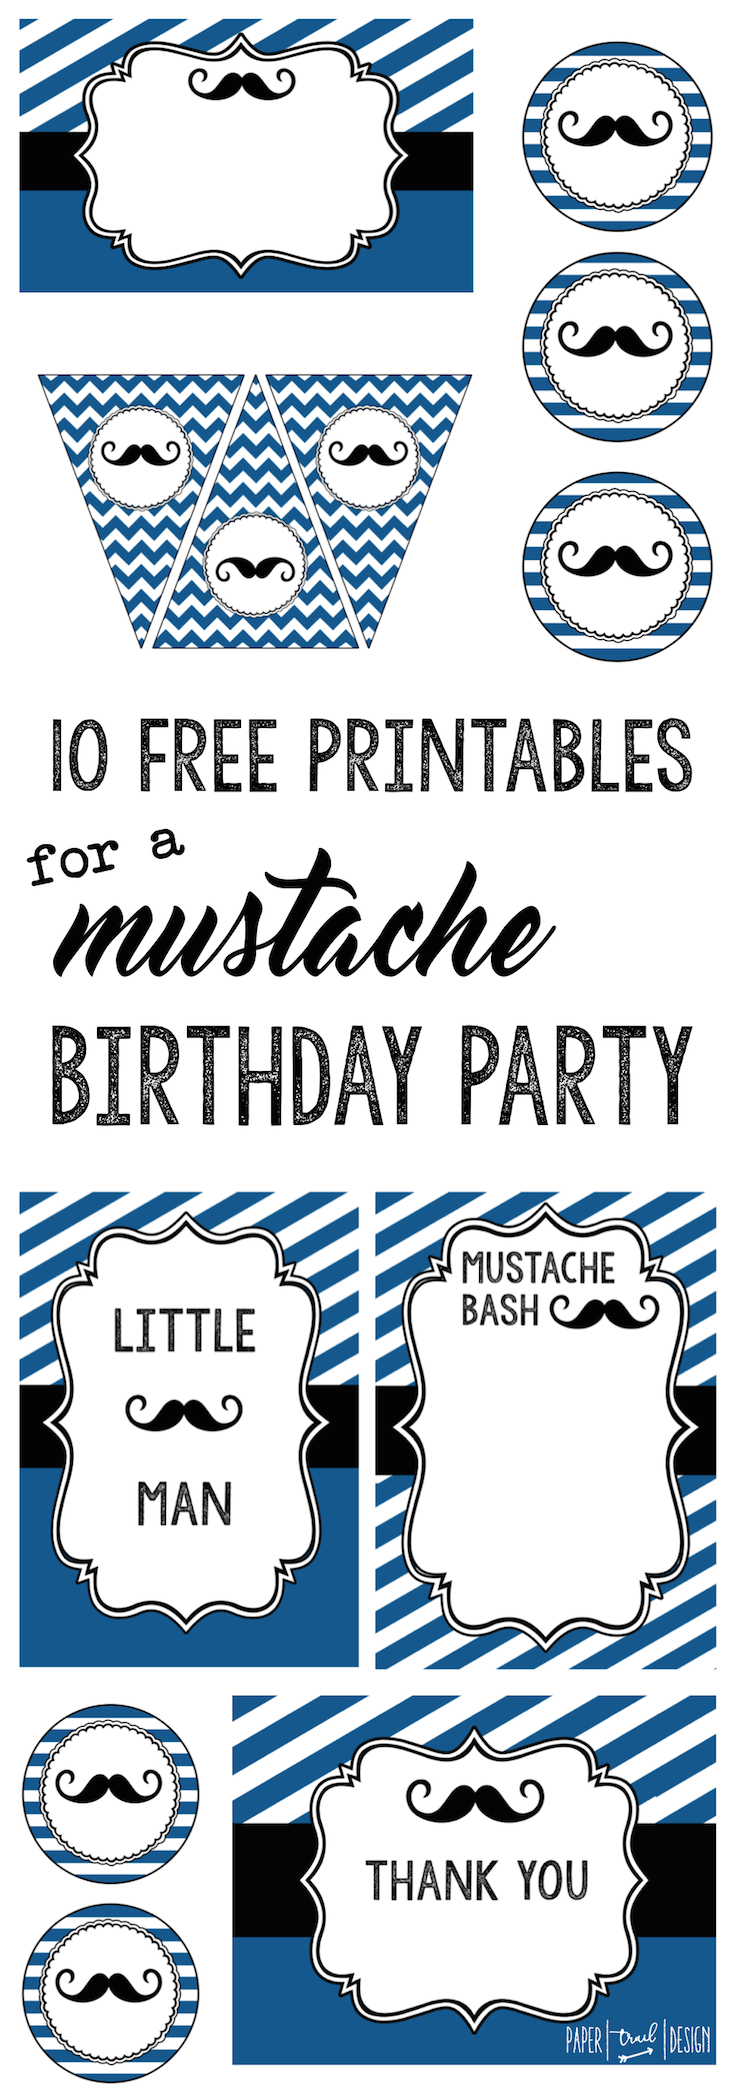 Mustache Birthday Party: Everything you need for a mustache party themed baby shower including banner, food labels, invitation, cupcake toppers, art decor print, thank you cards, and photo booth.